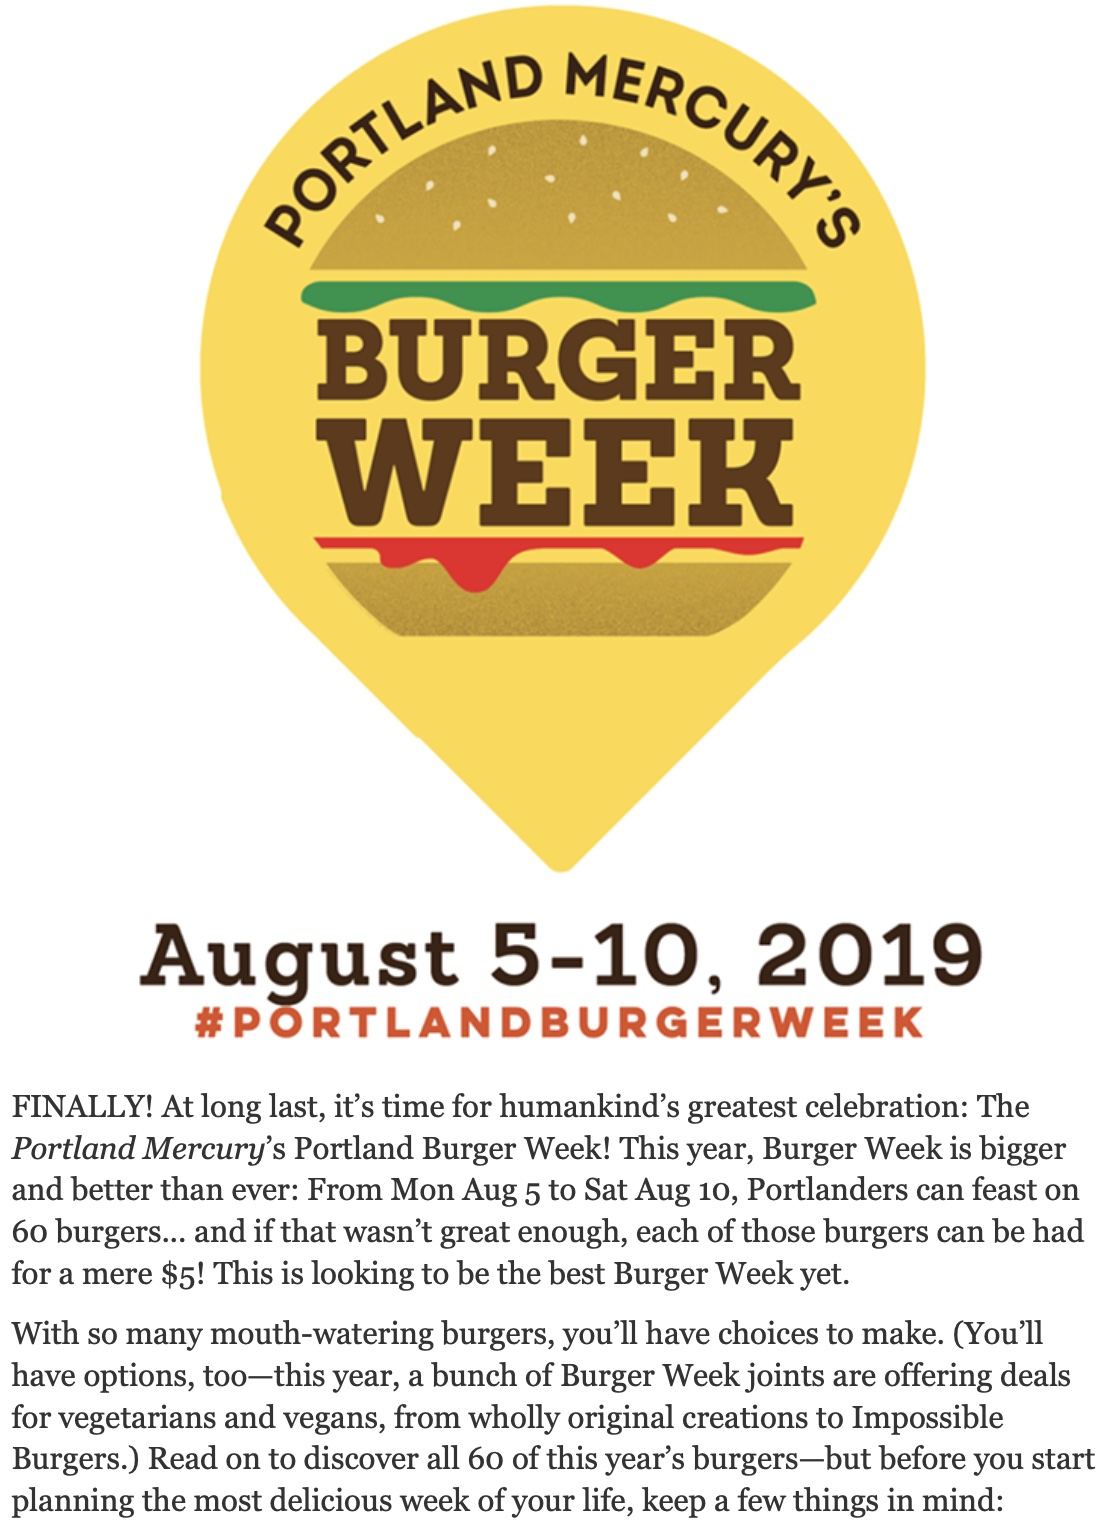 Introductory copy for Portland Burger Week.